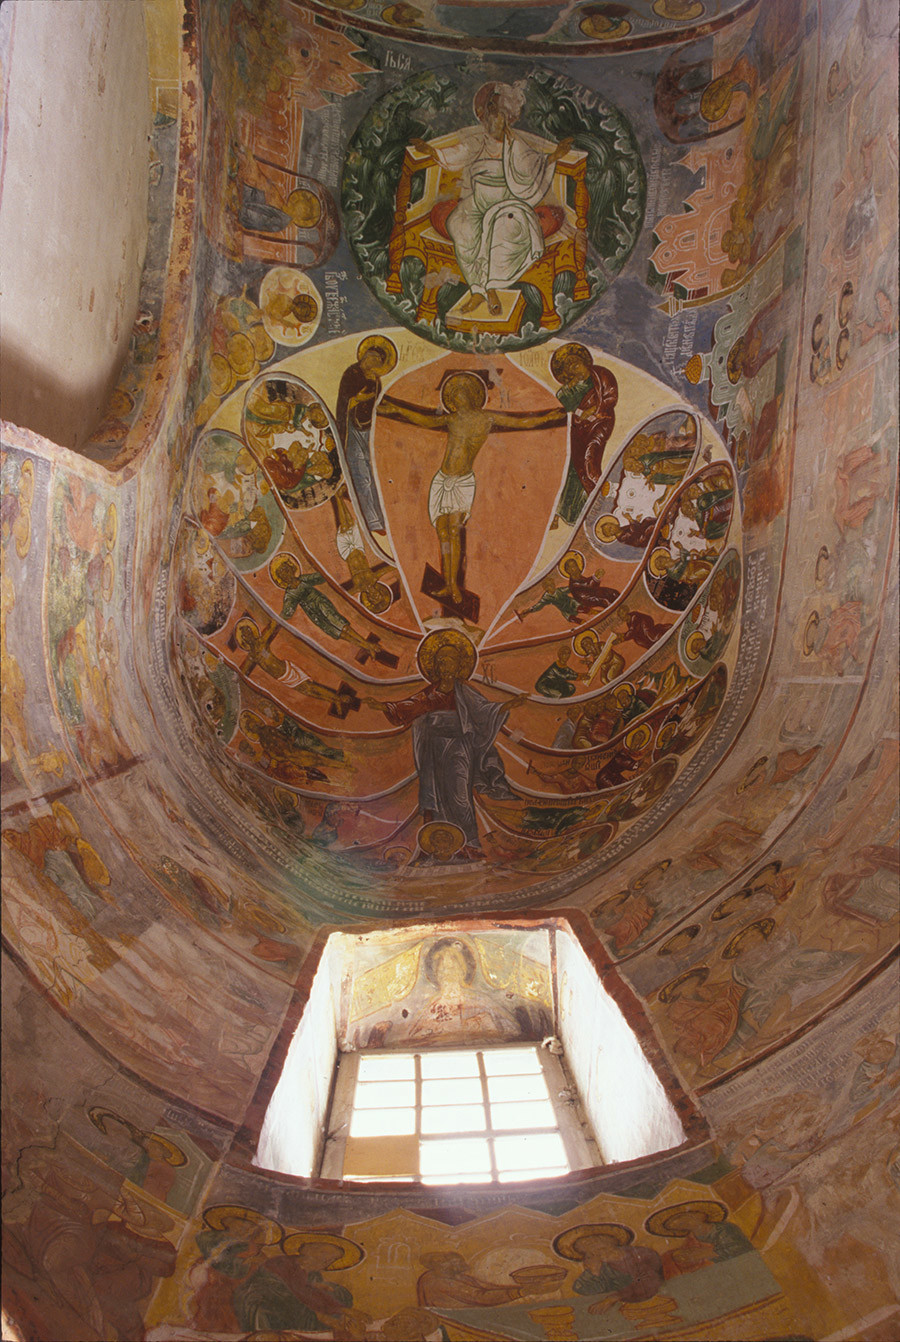 Cathedral of the Annunciation. Diaconicon (right part of apse). Ceiling fresco of Passions (martyrdom) of the Apostles, with Christ in the center and Christ crucified beneath image of Lord God Sabaoth. June 20, 2000